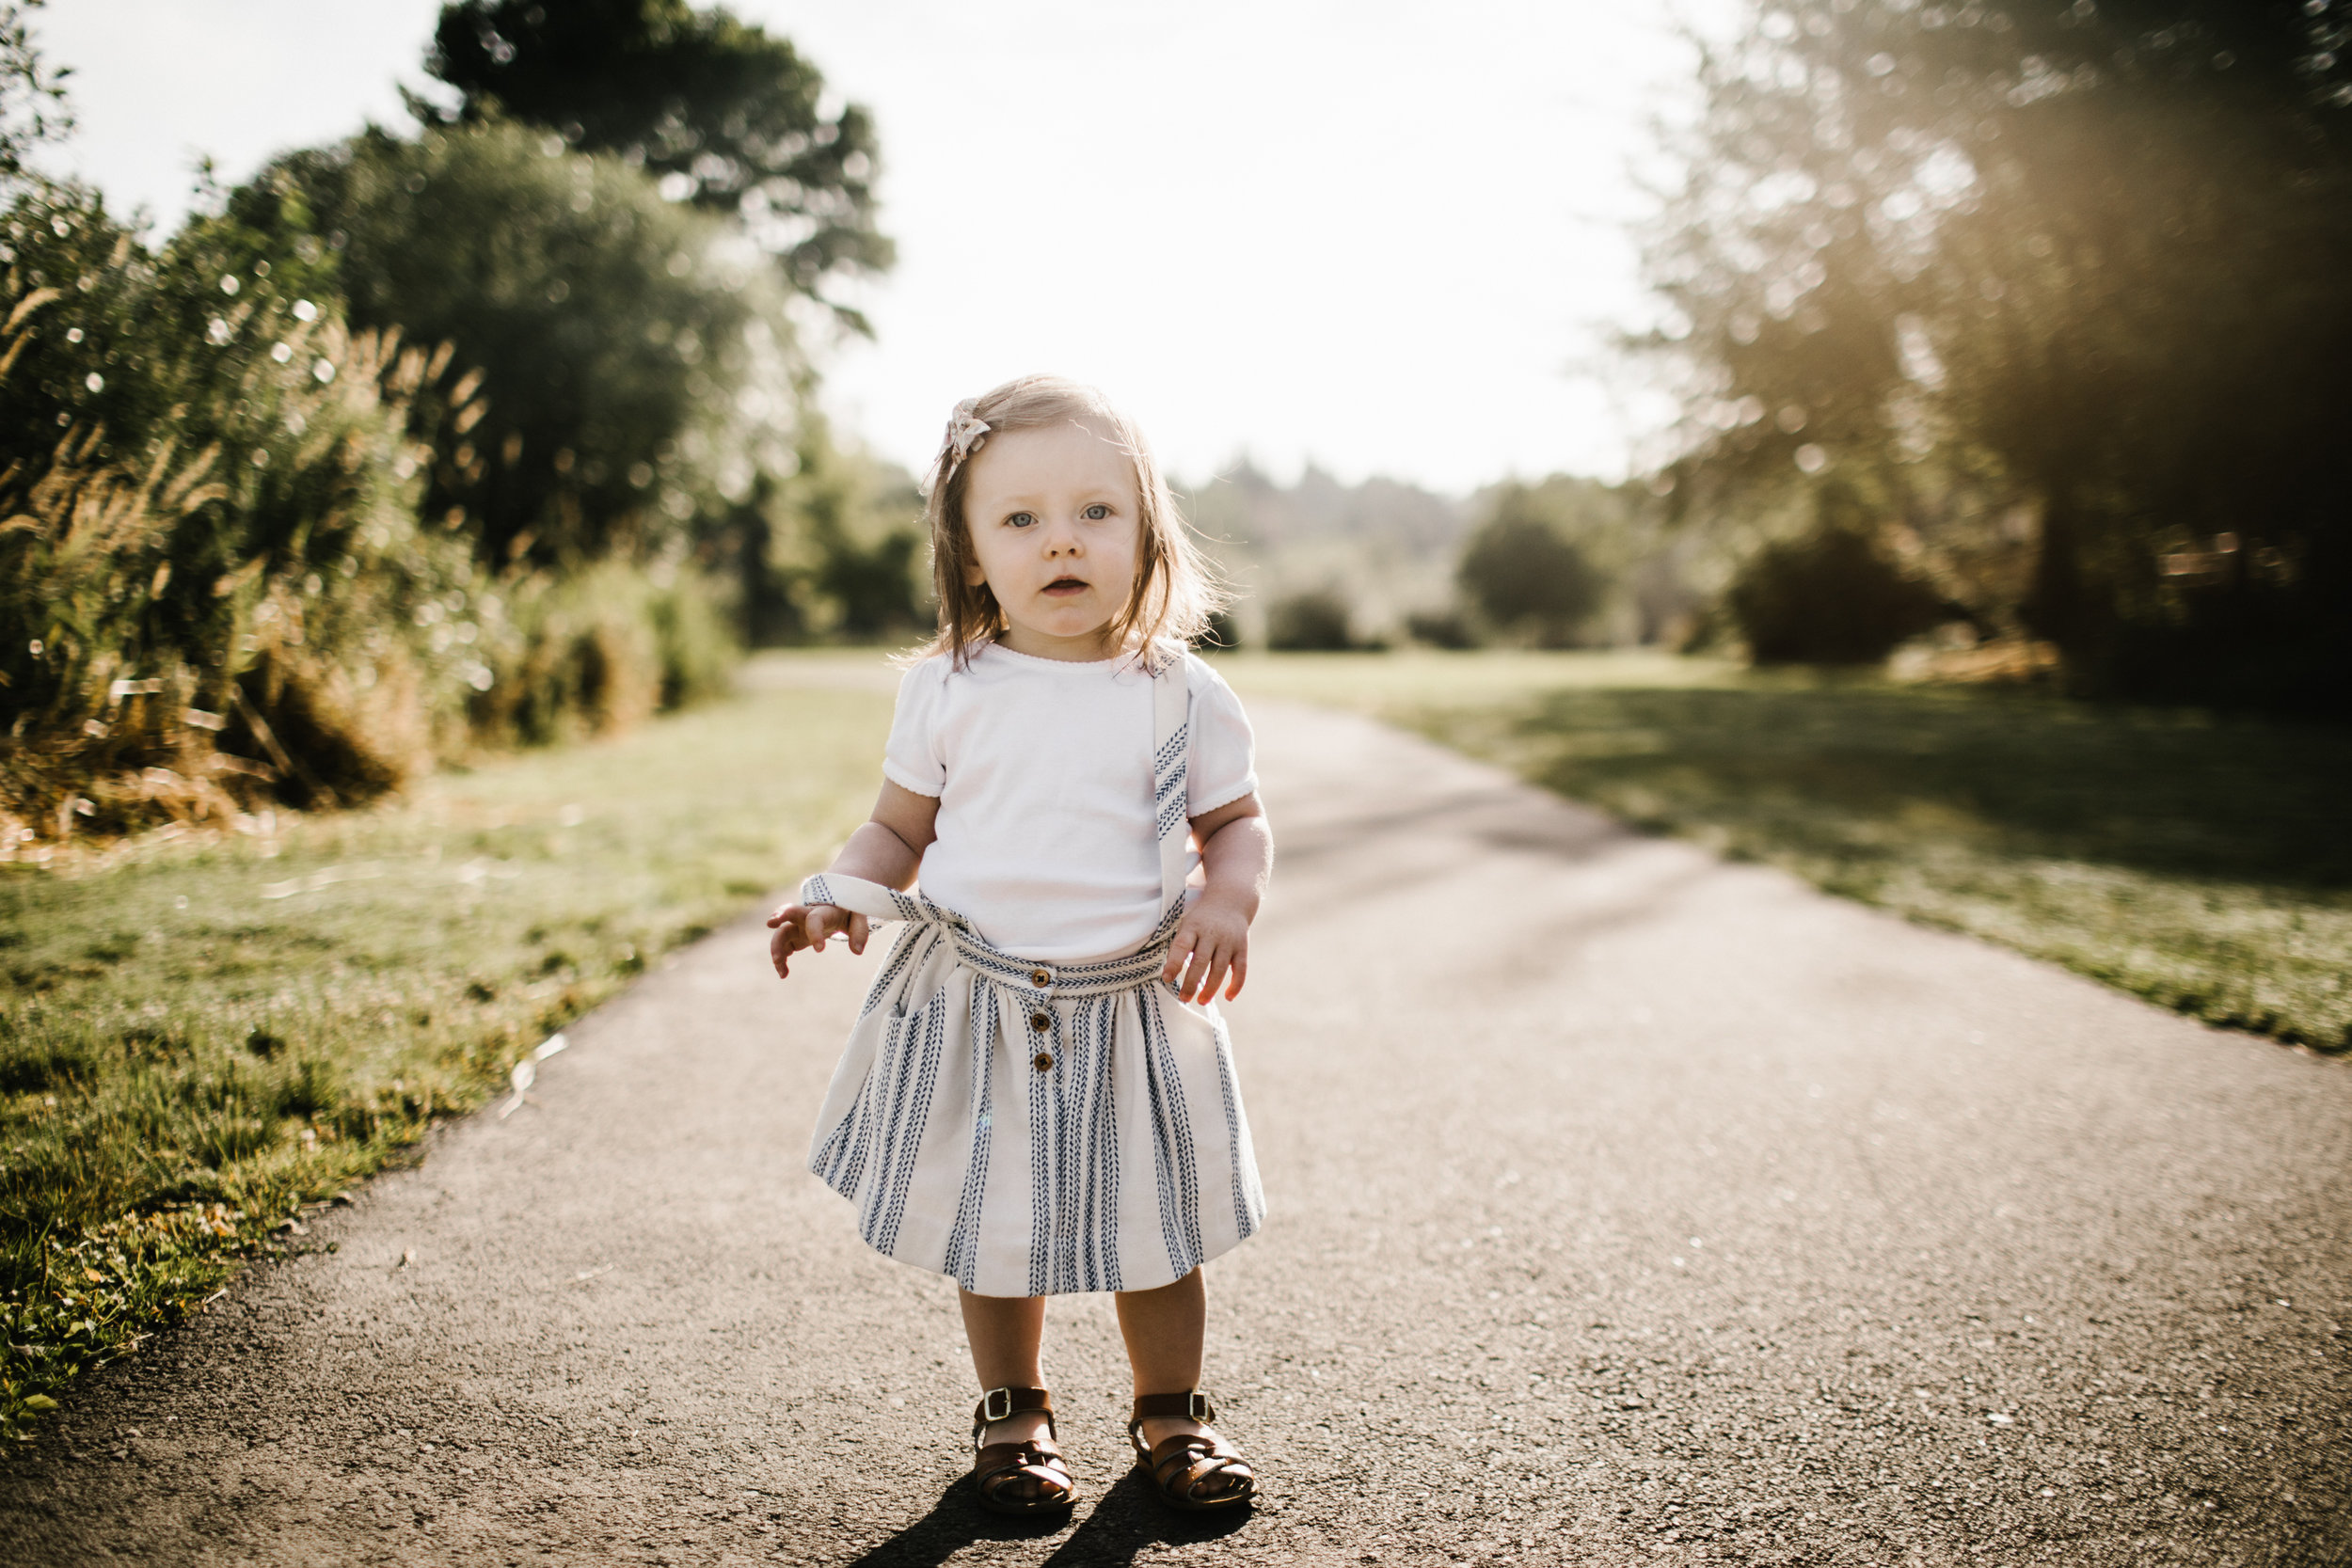 Toddler girl on path looking at camera